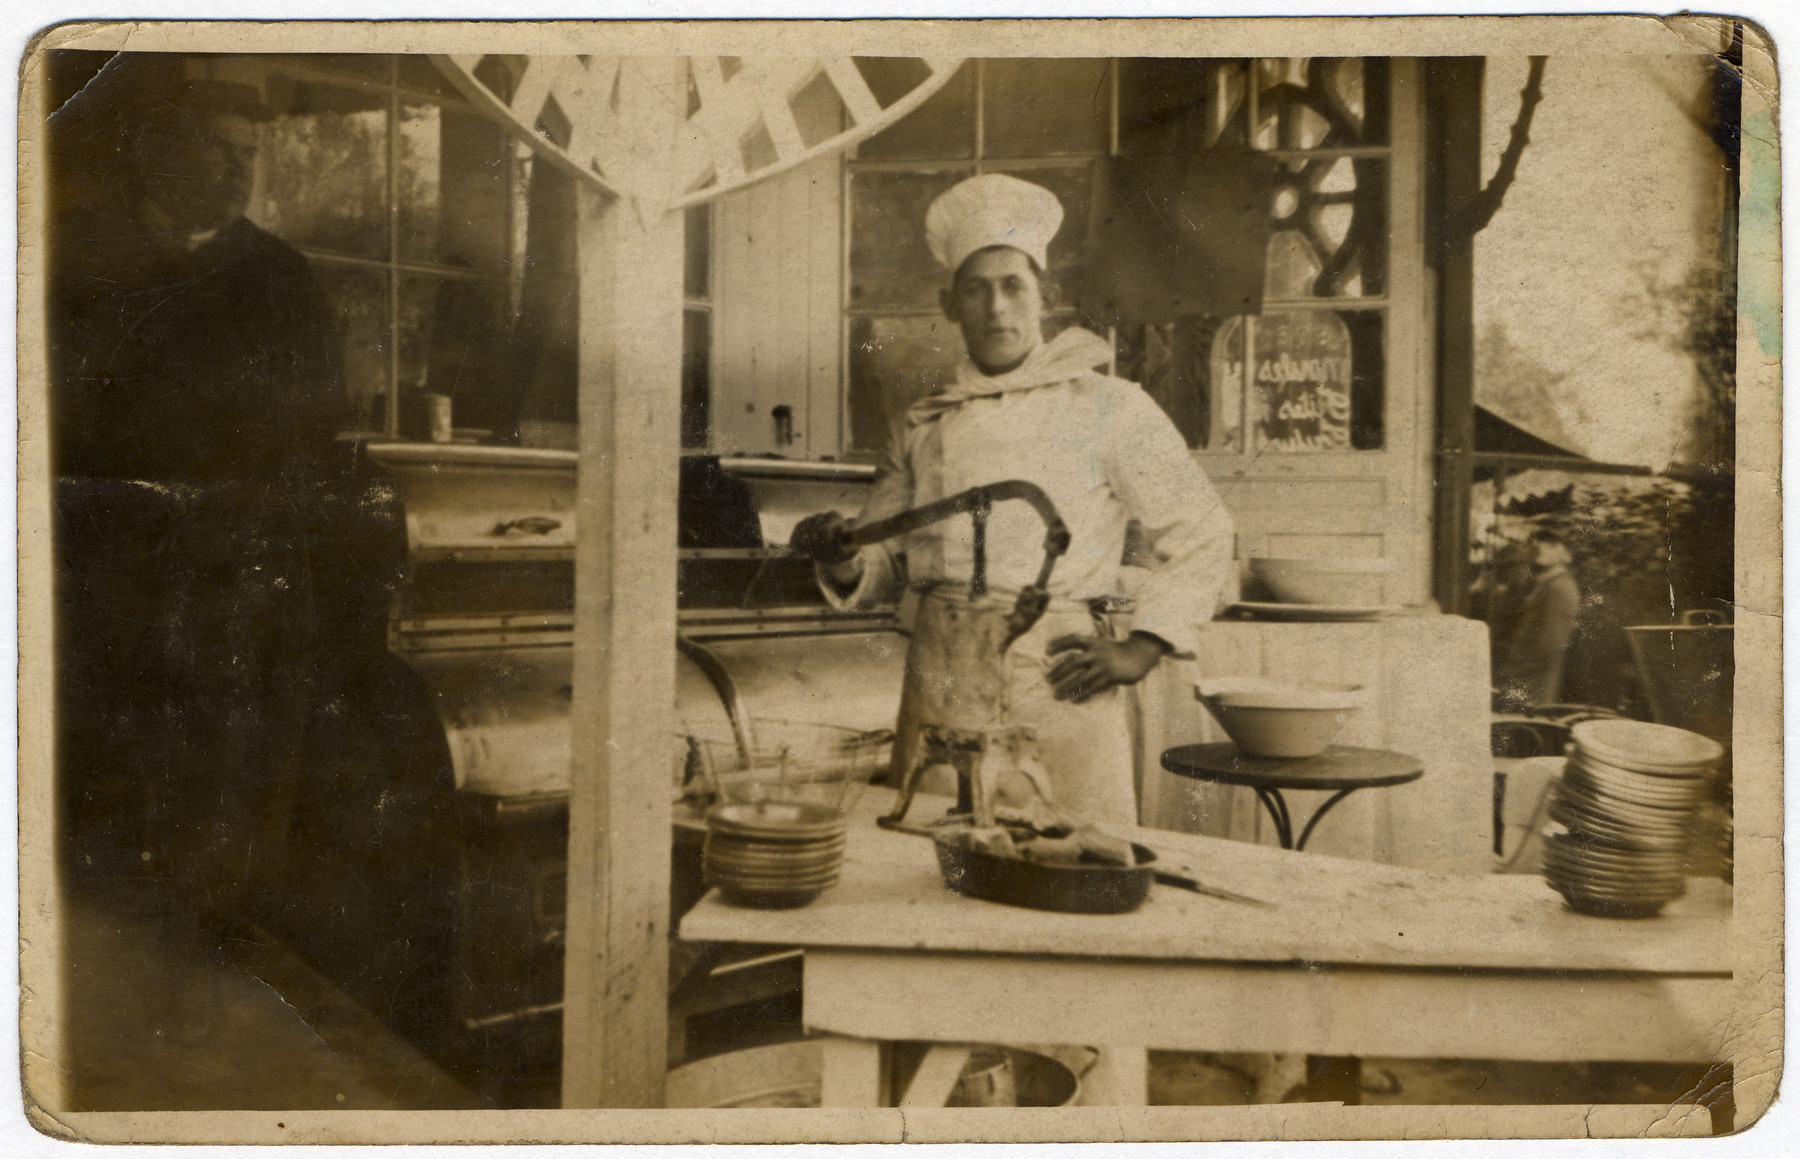 Chef Jacques Gimelstein works in the kitchen of the cafe of his brother, Albert Abramowitch.